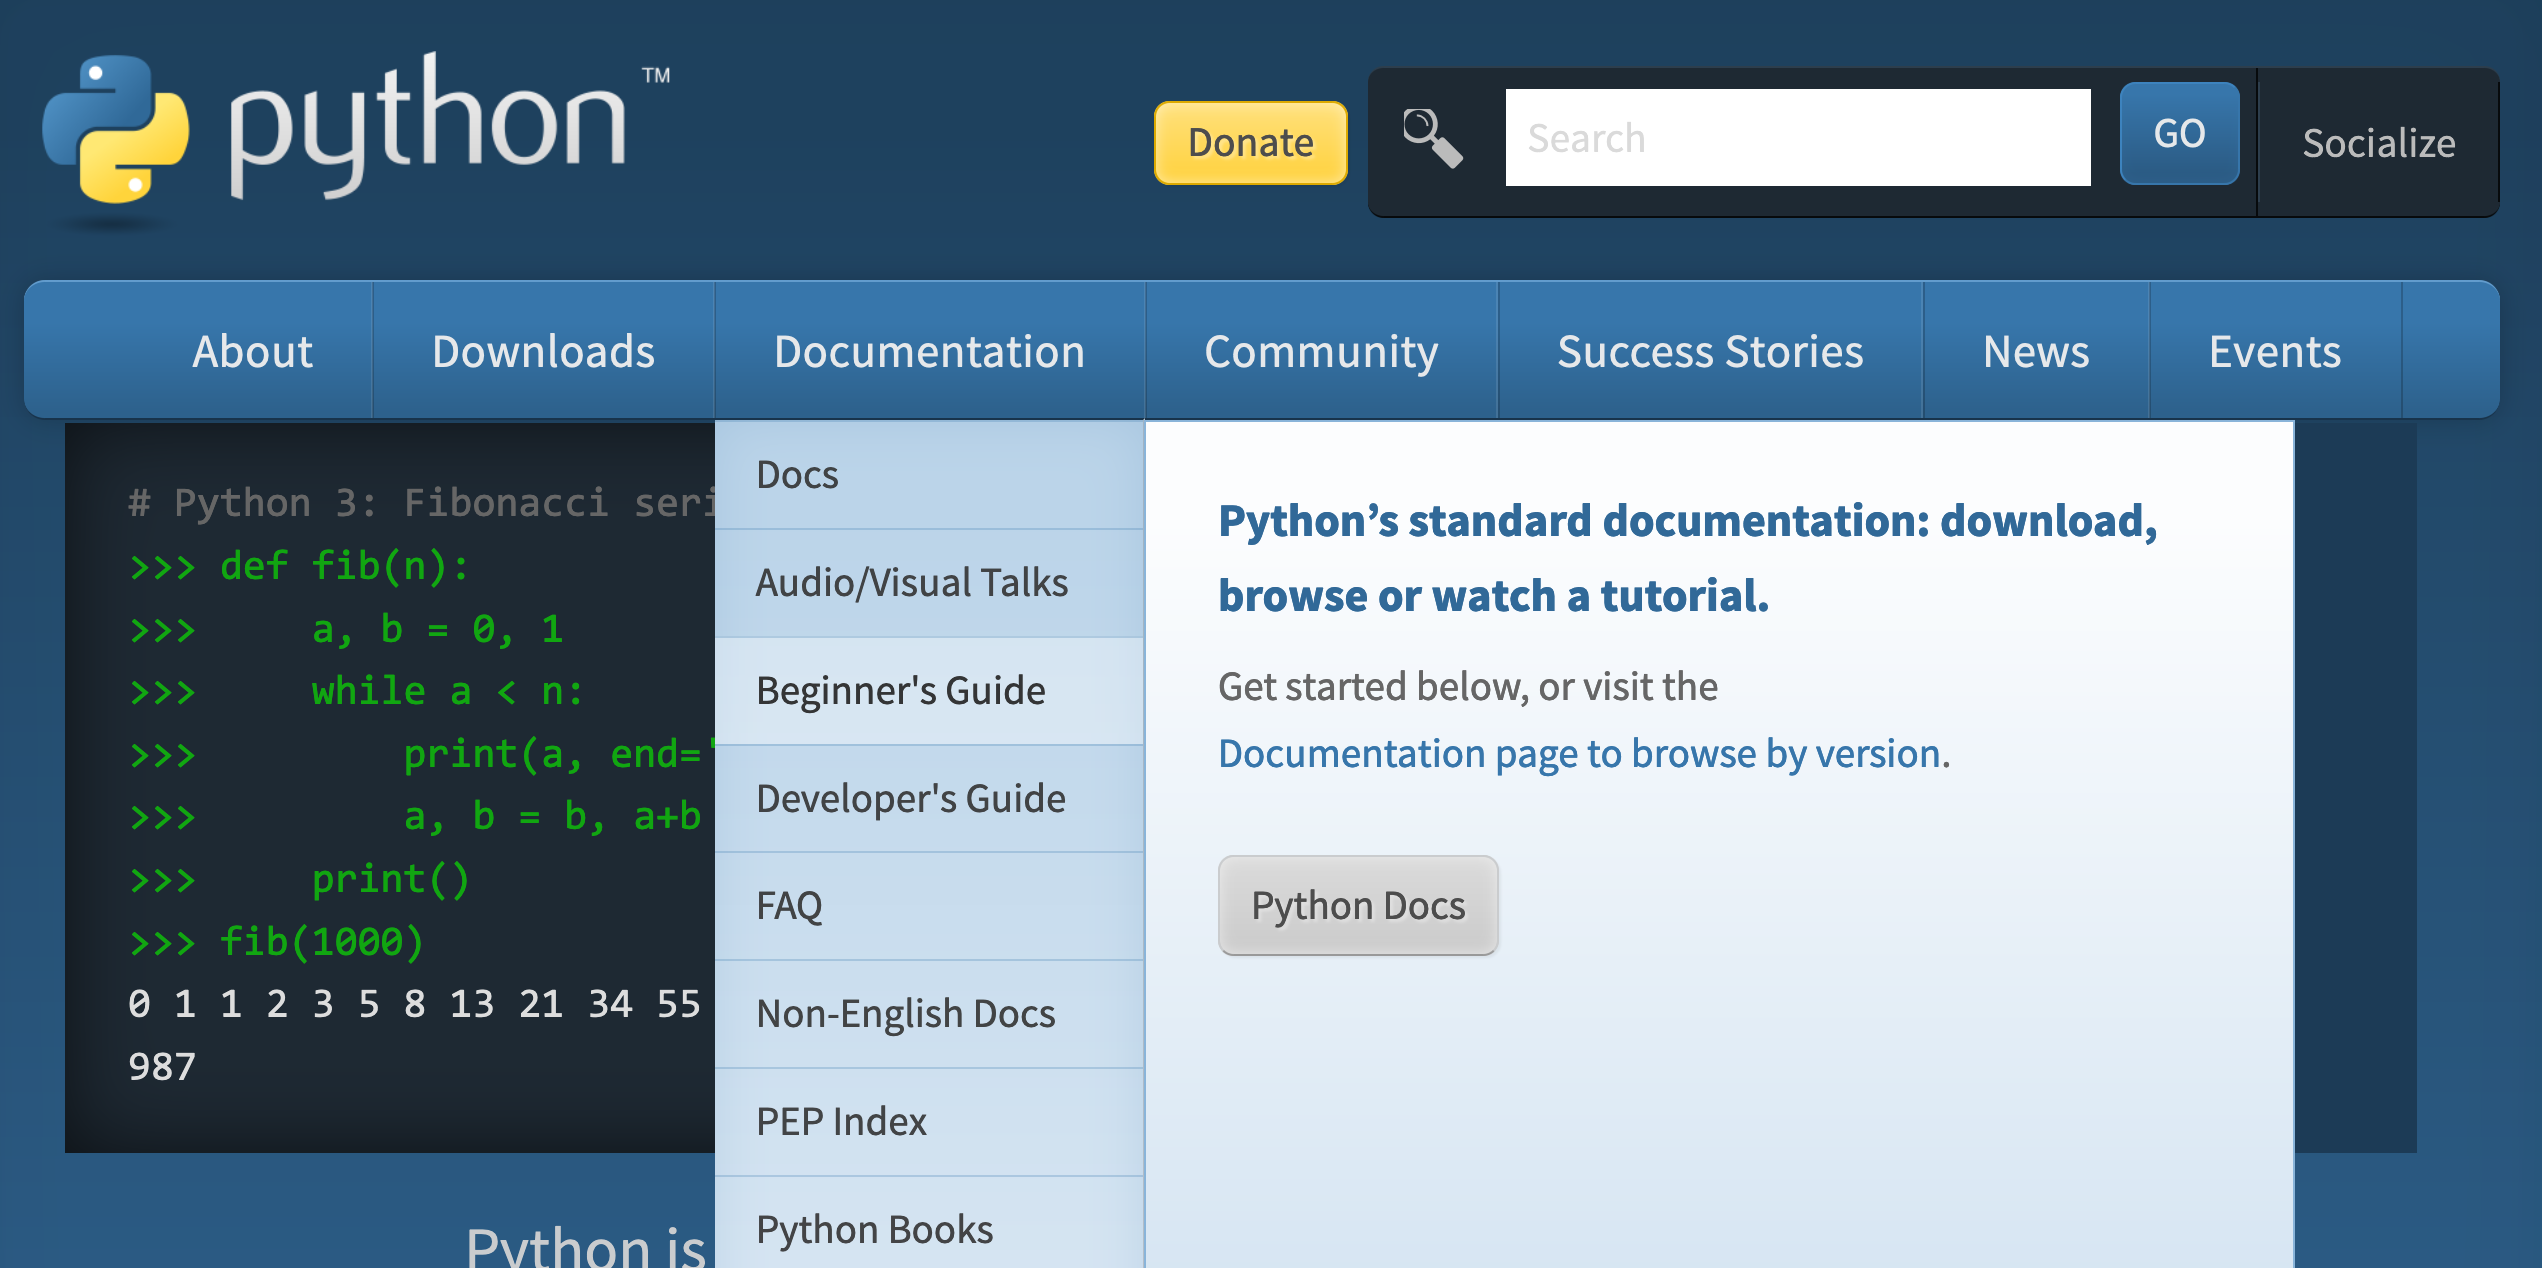 Screenshot of the offical Python website showing the Beginner's Guide link under the Documentation tab in the Navigation Bar.